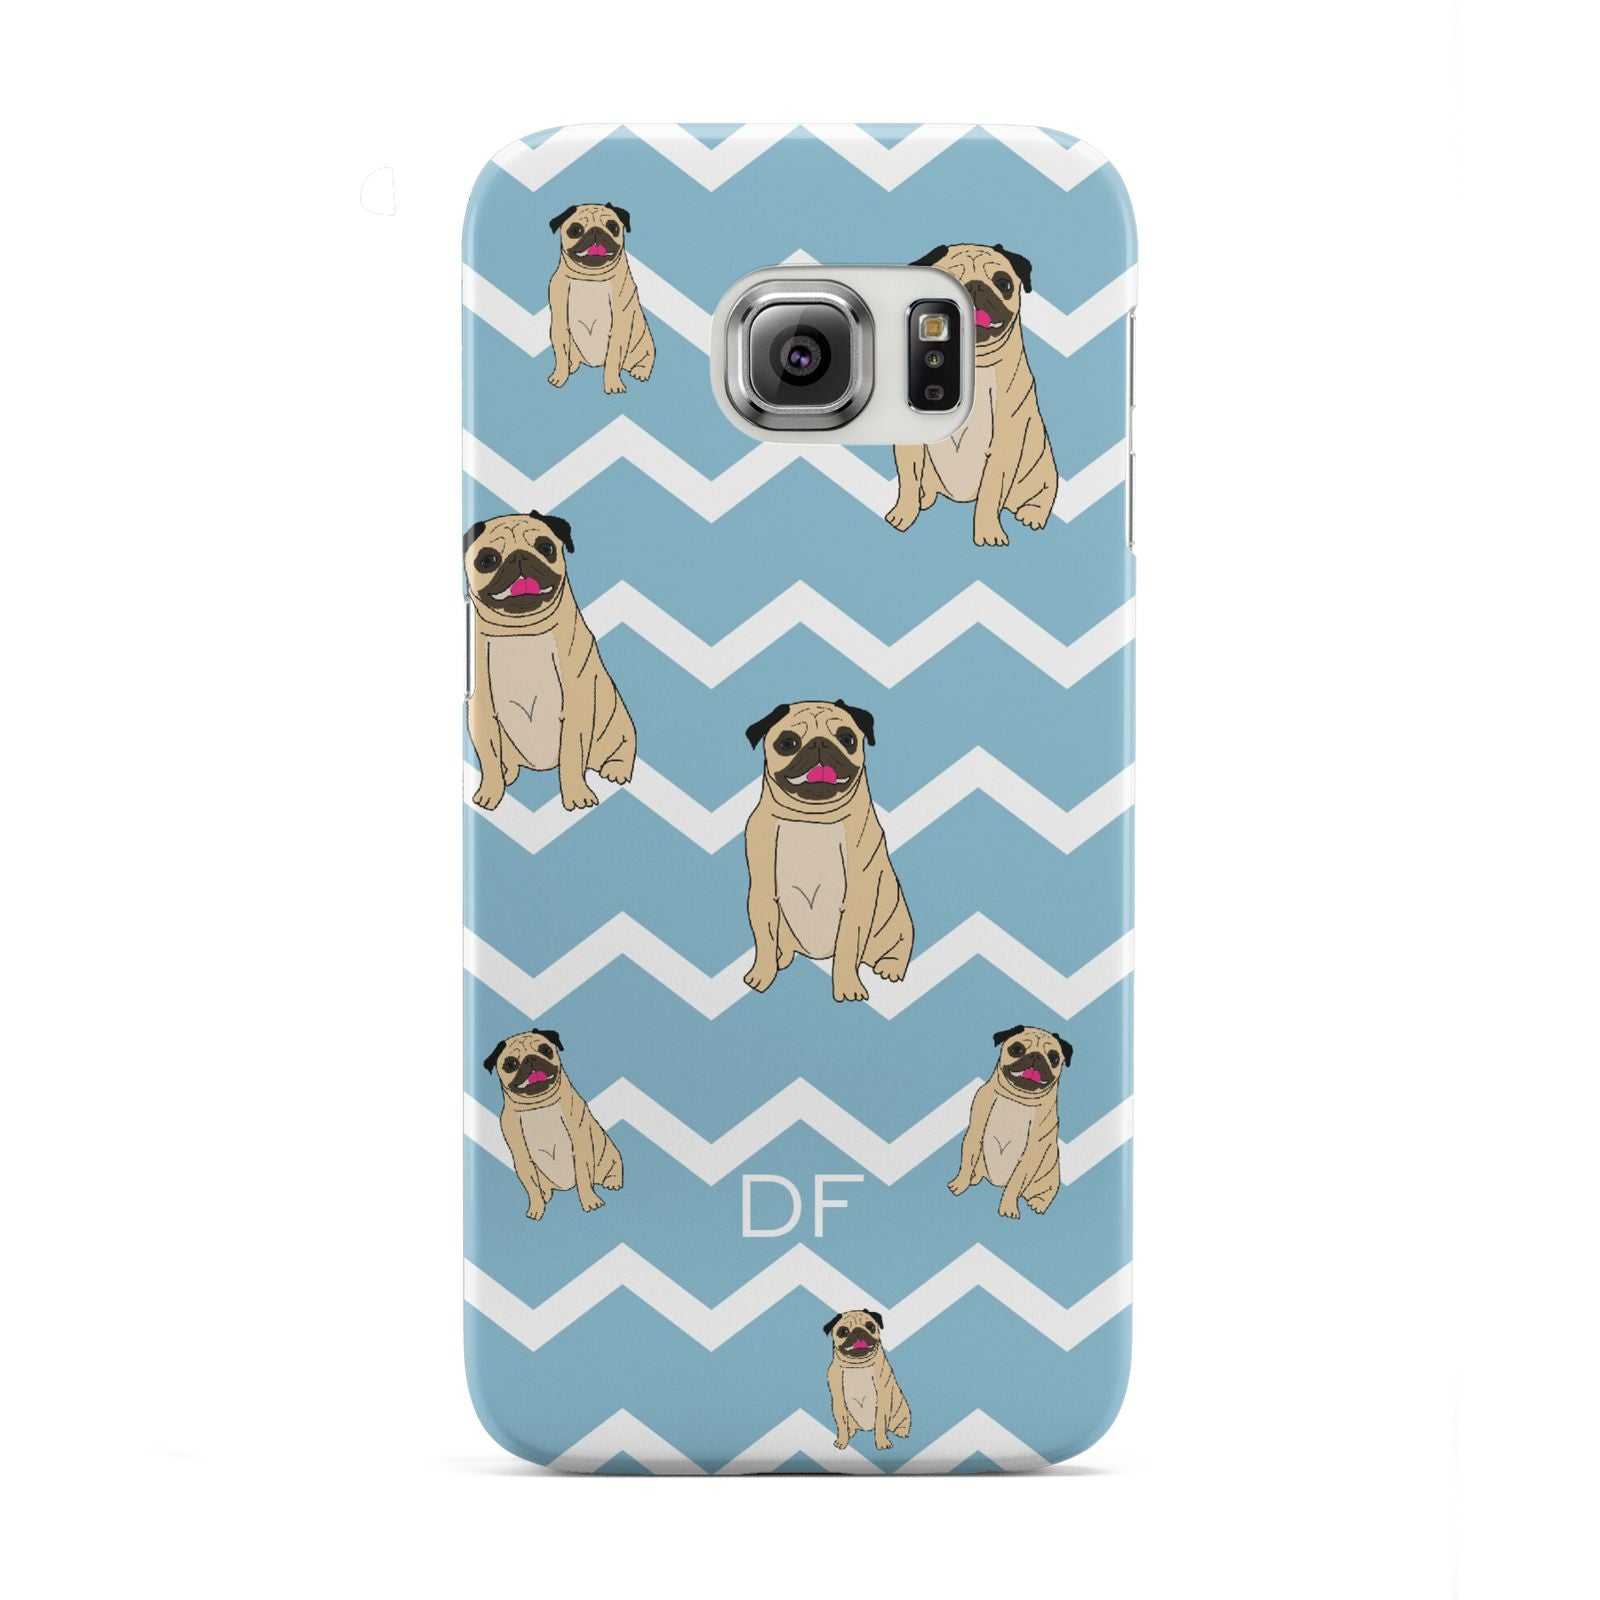 Personalised Pug Initials Samsung Galaxy S6 Edge Case